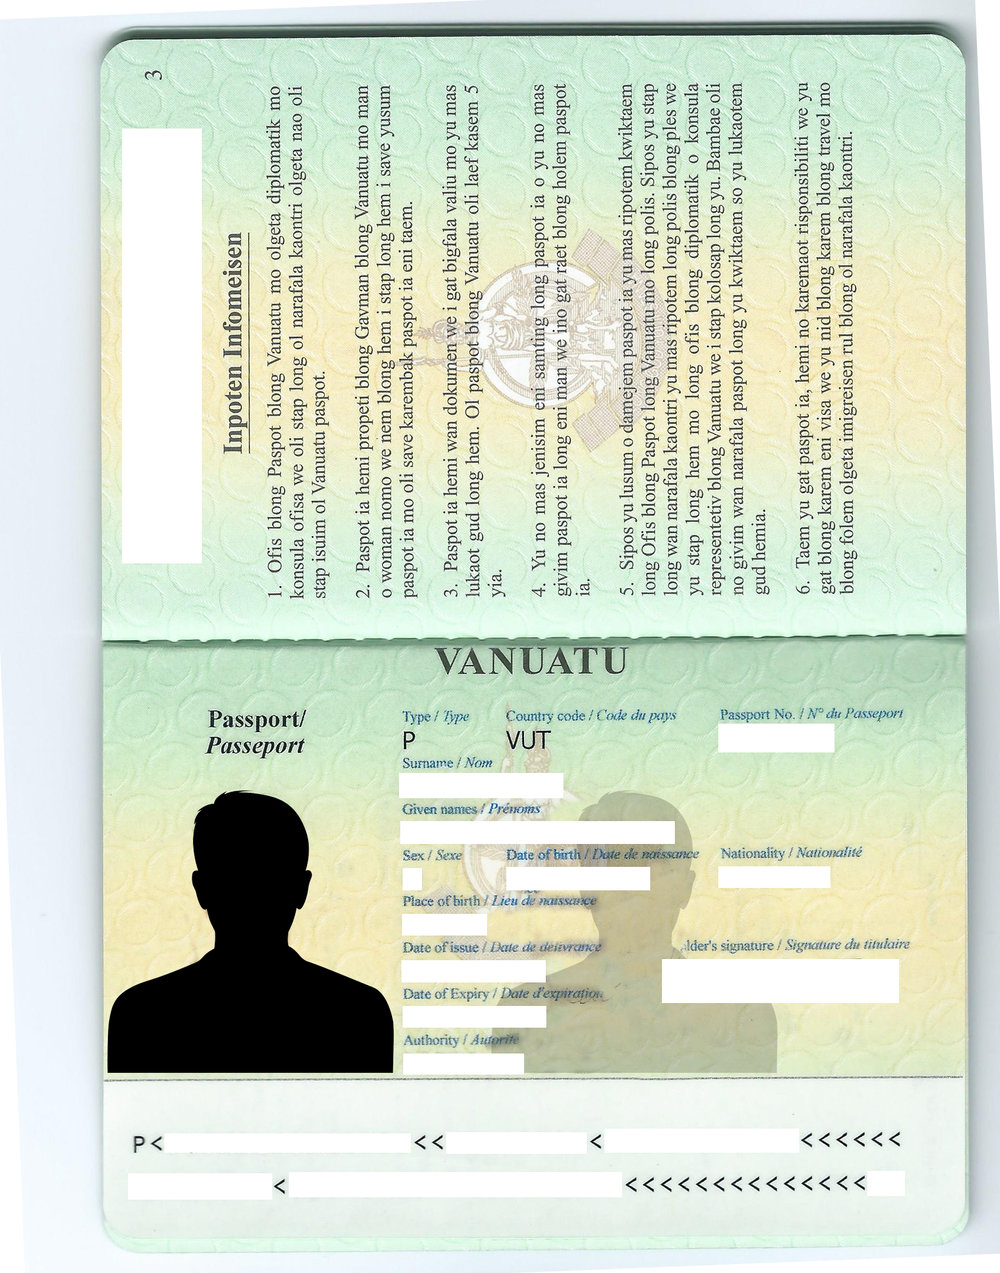 The personal information page of a Vanuatu passport